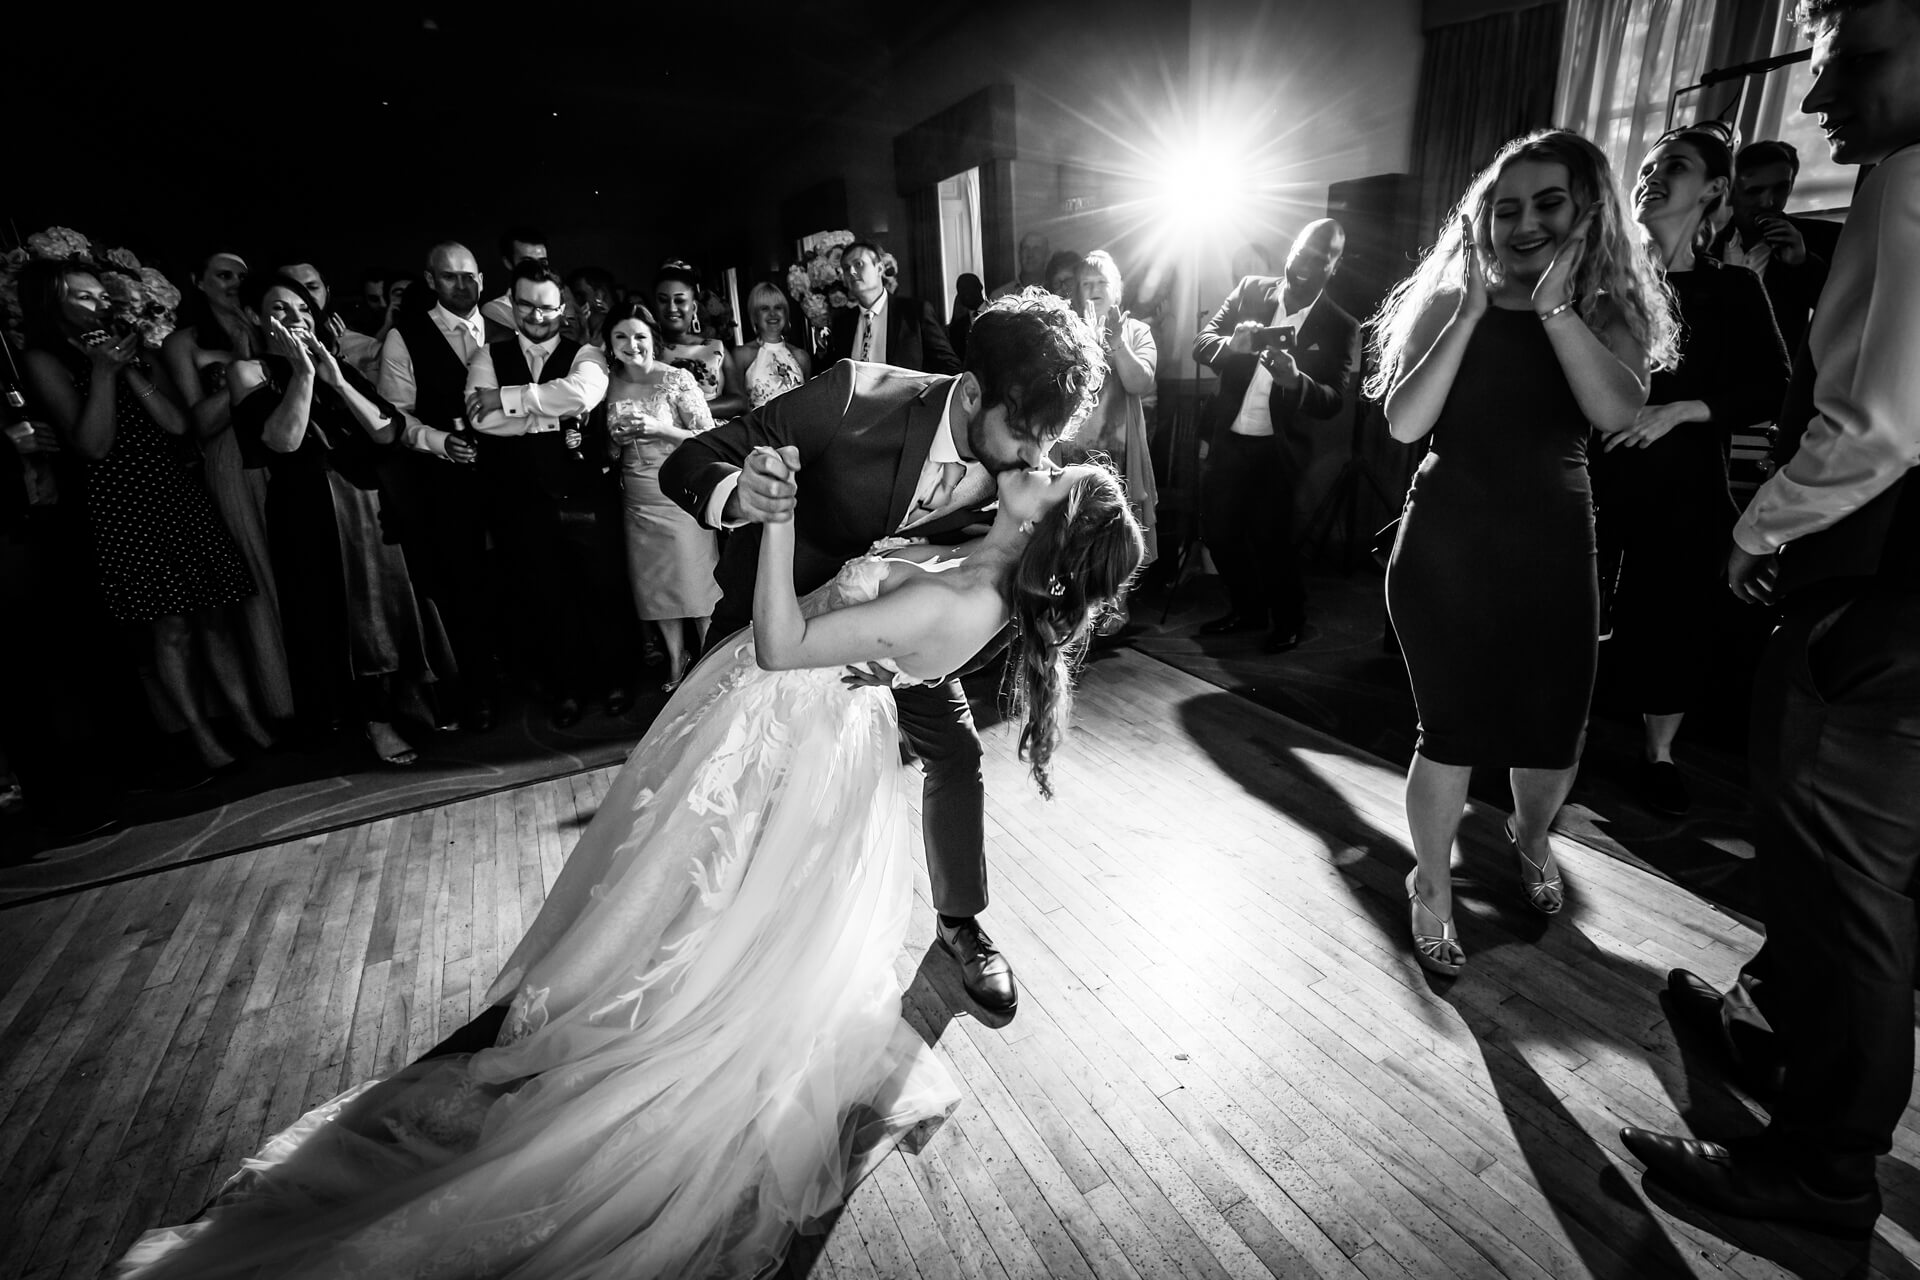 the groom dips the bride during their first dance